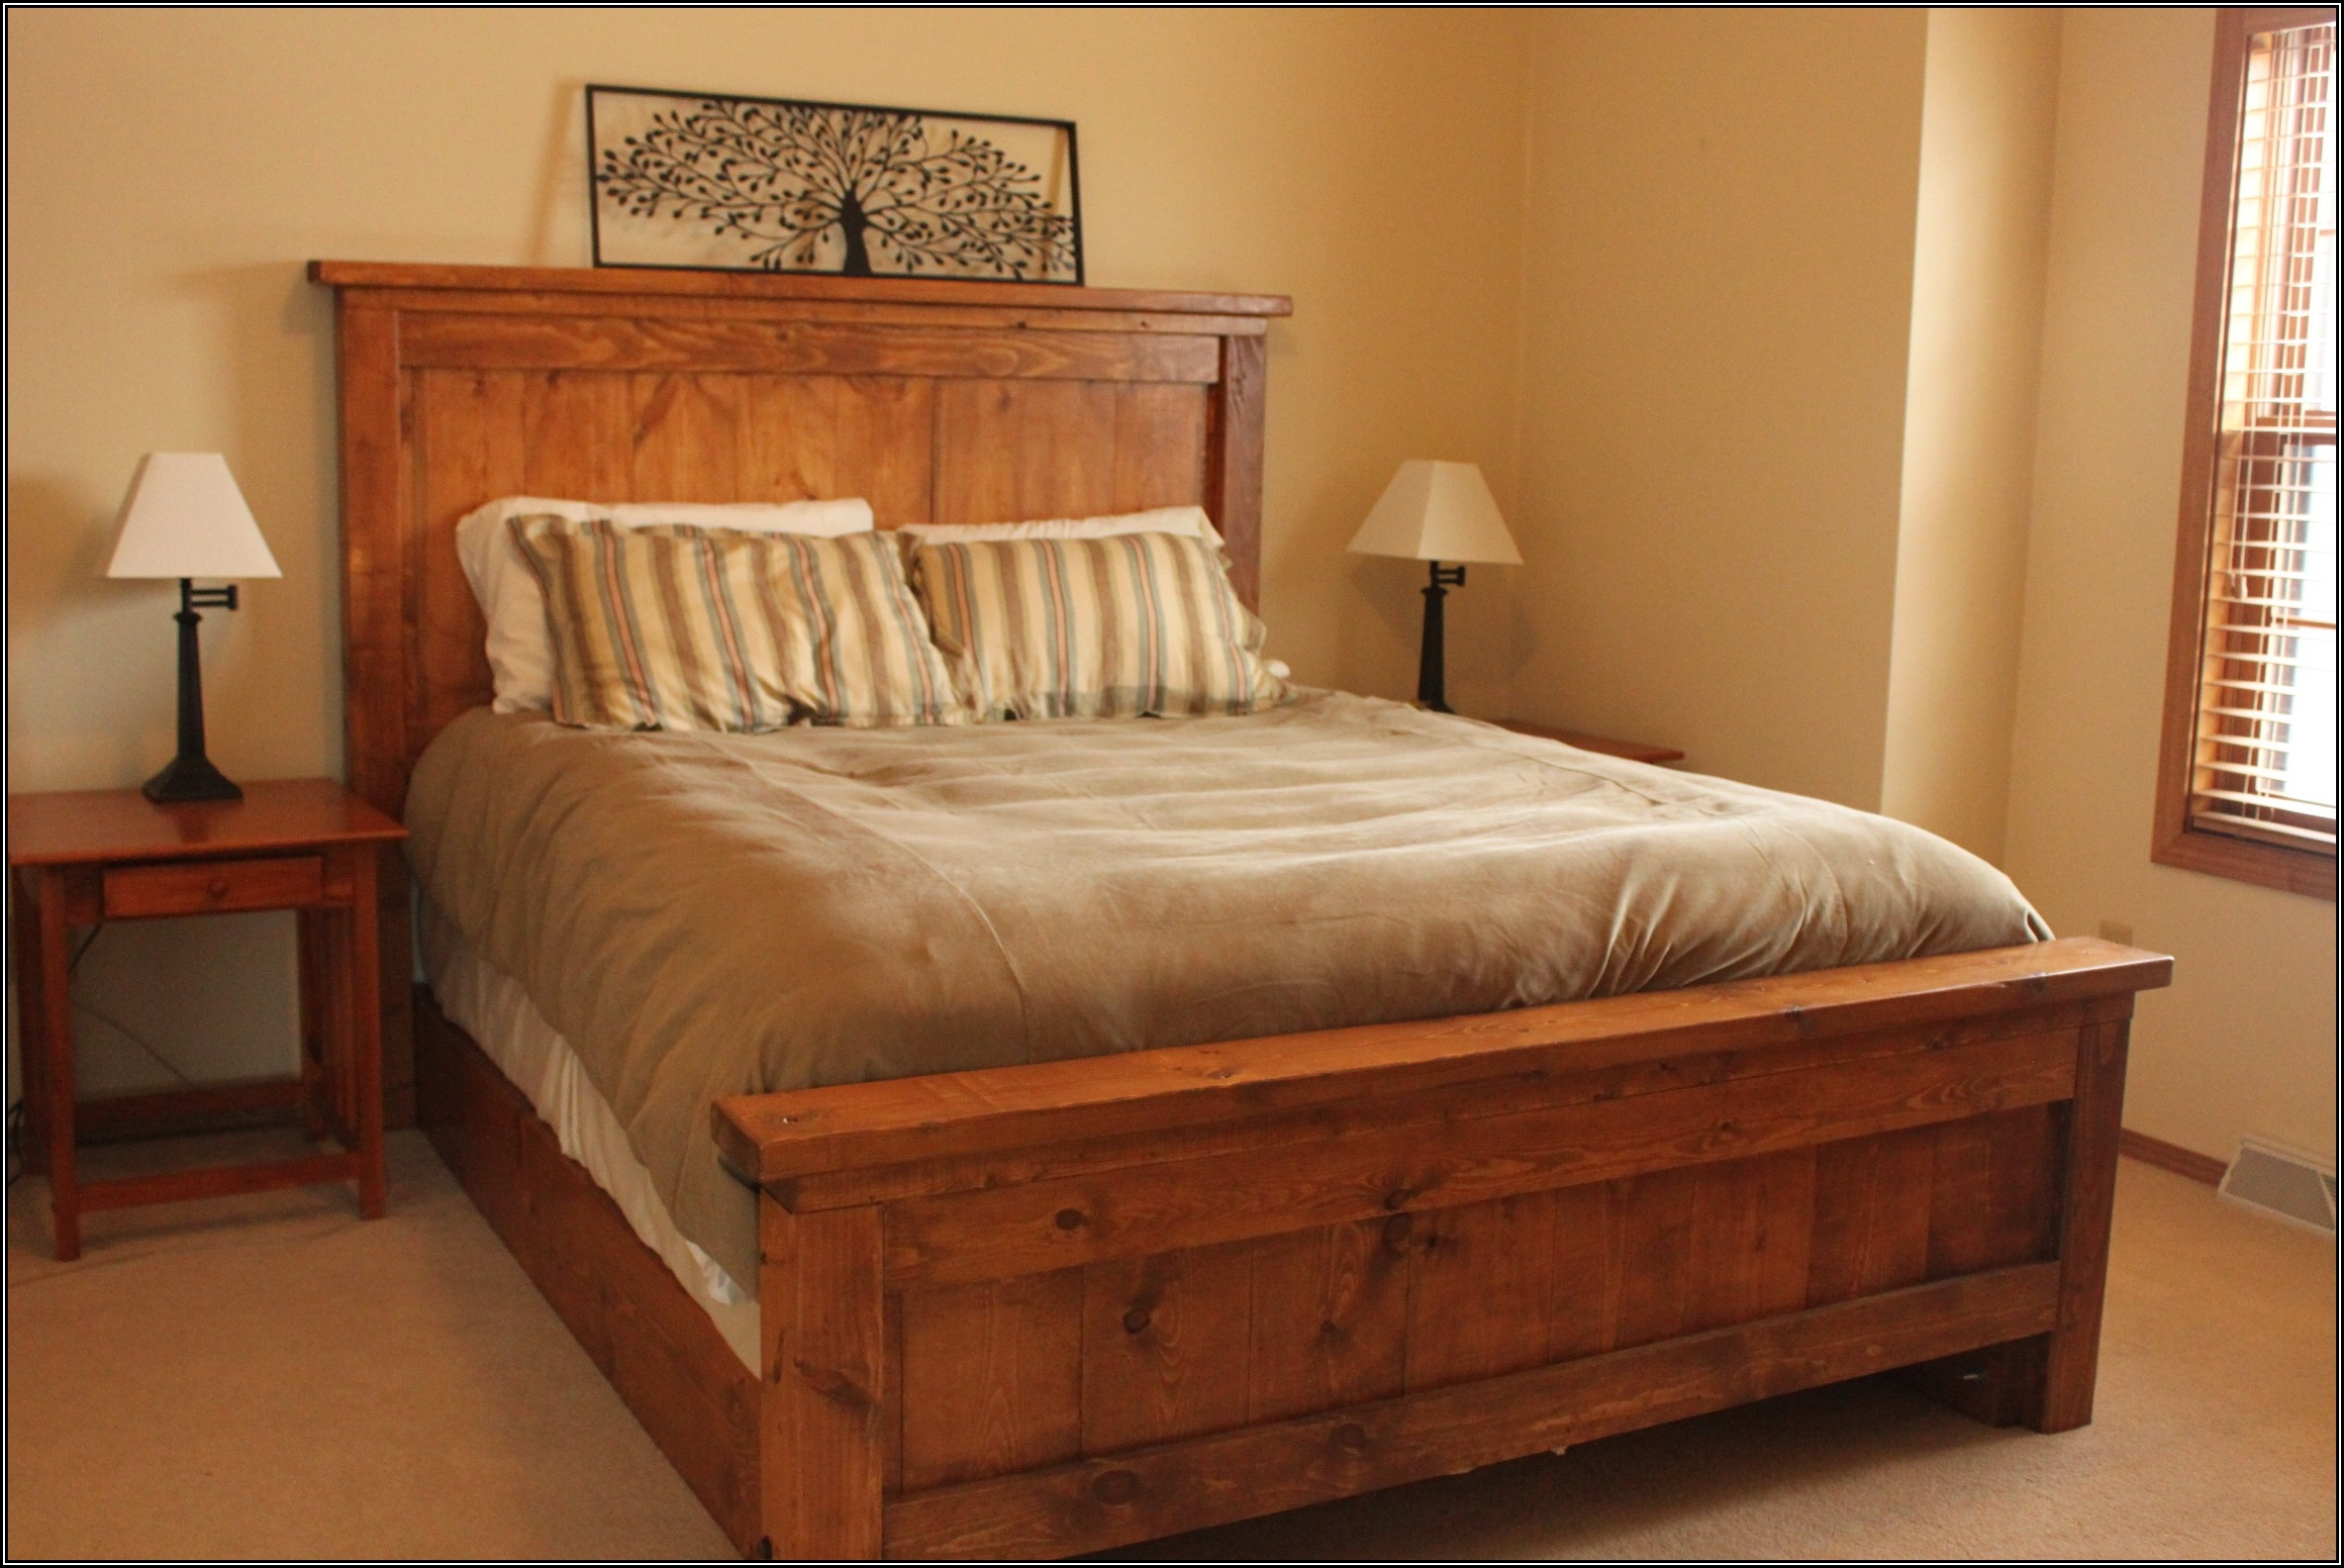 Wood Queen Bed Frame With Headboardking size bed frame and headboard headboard designs